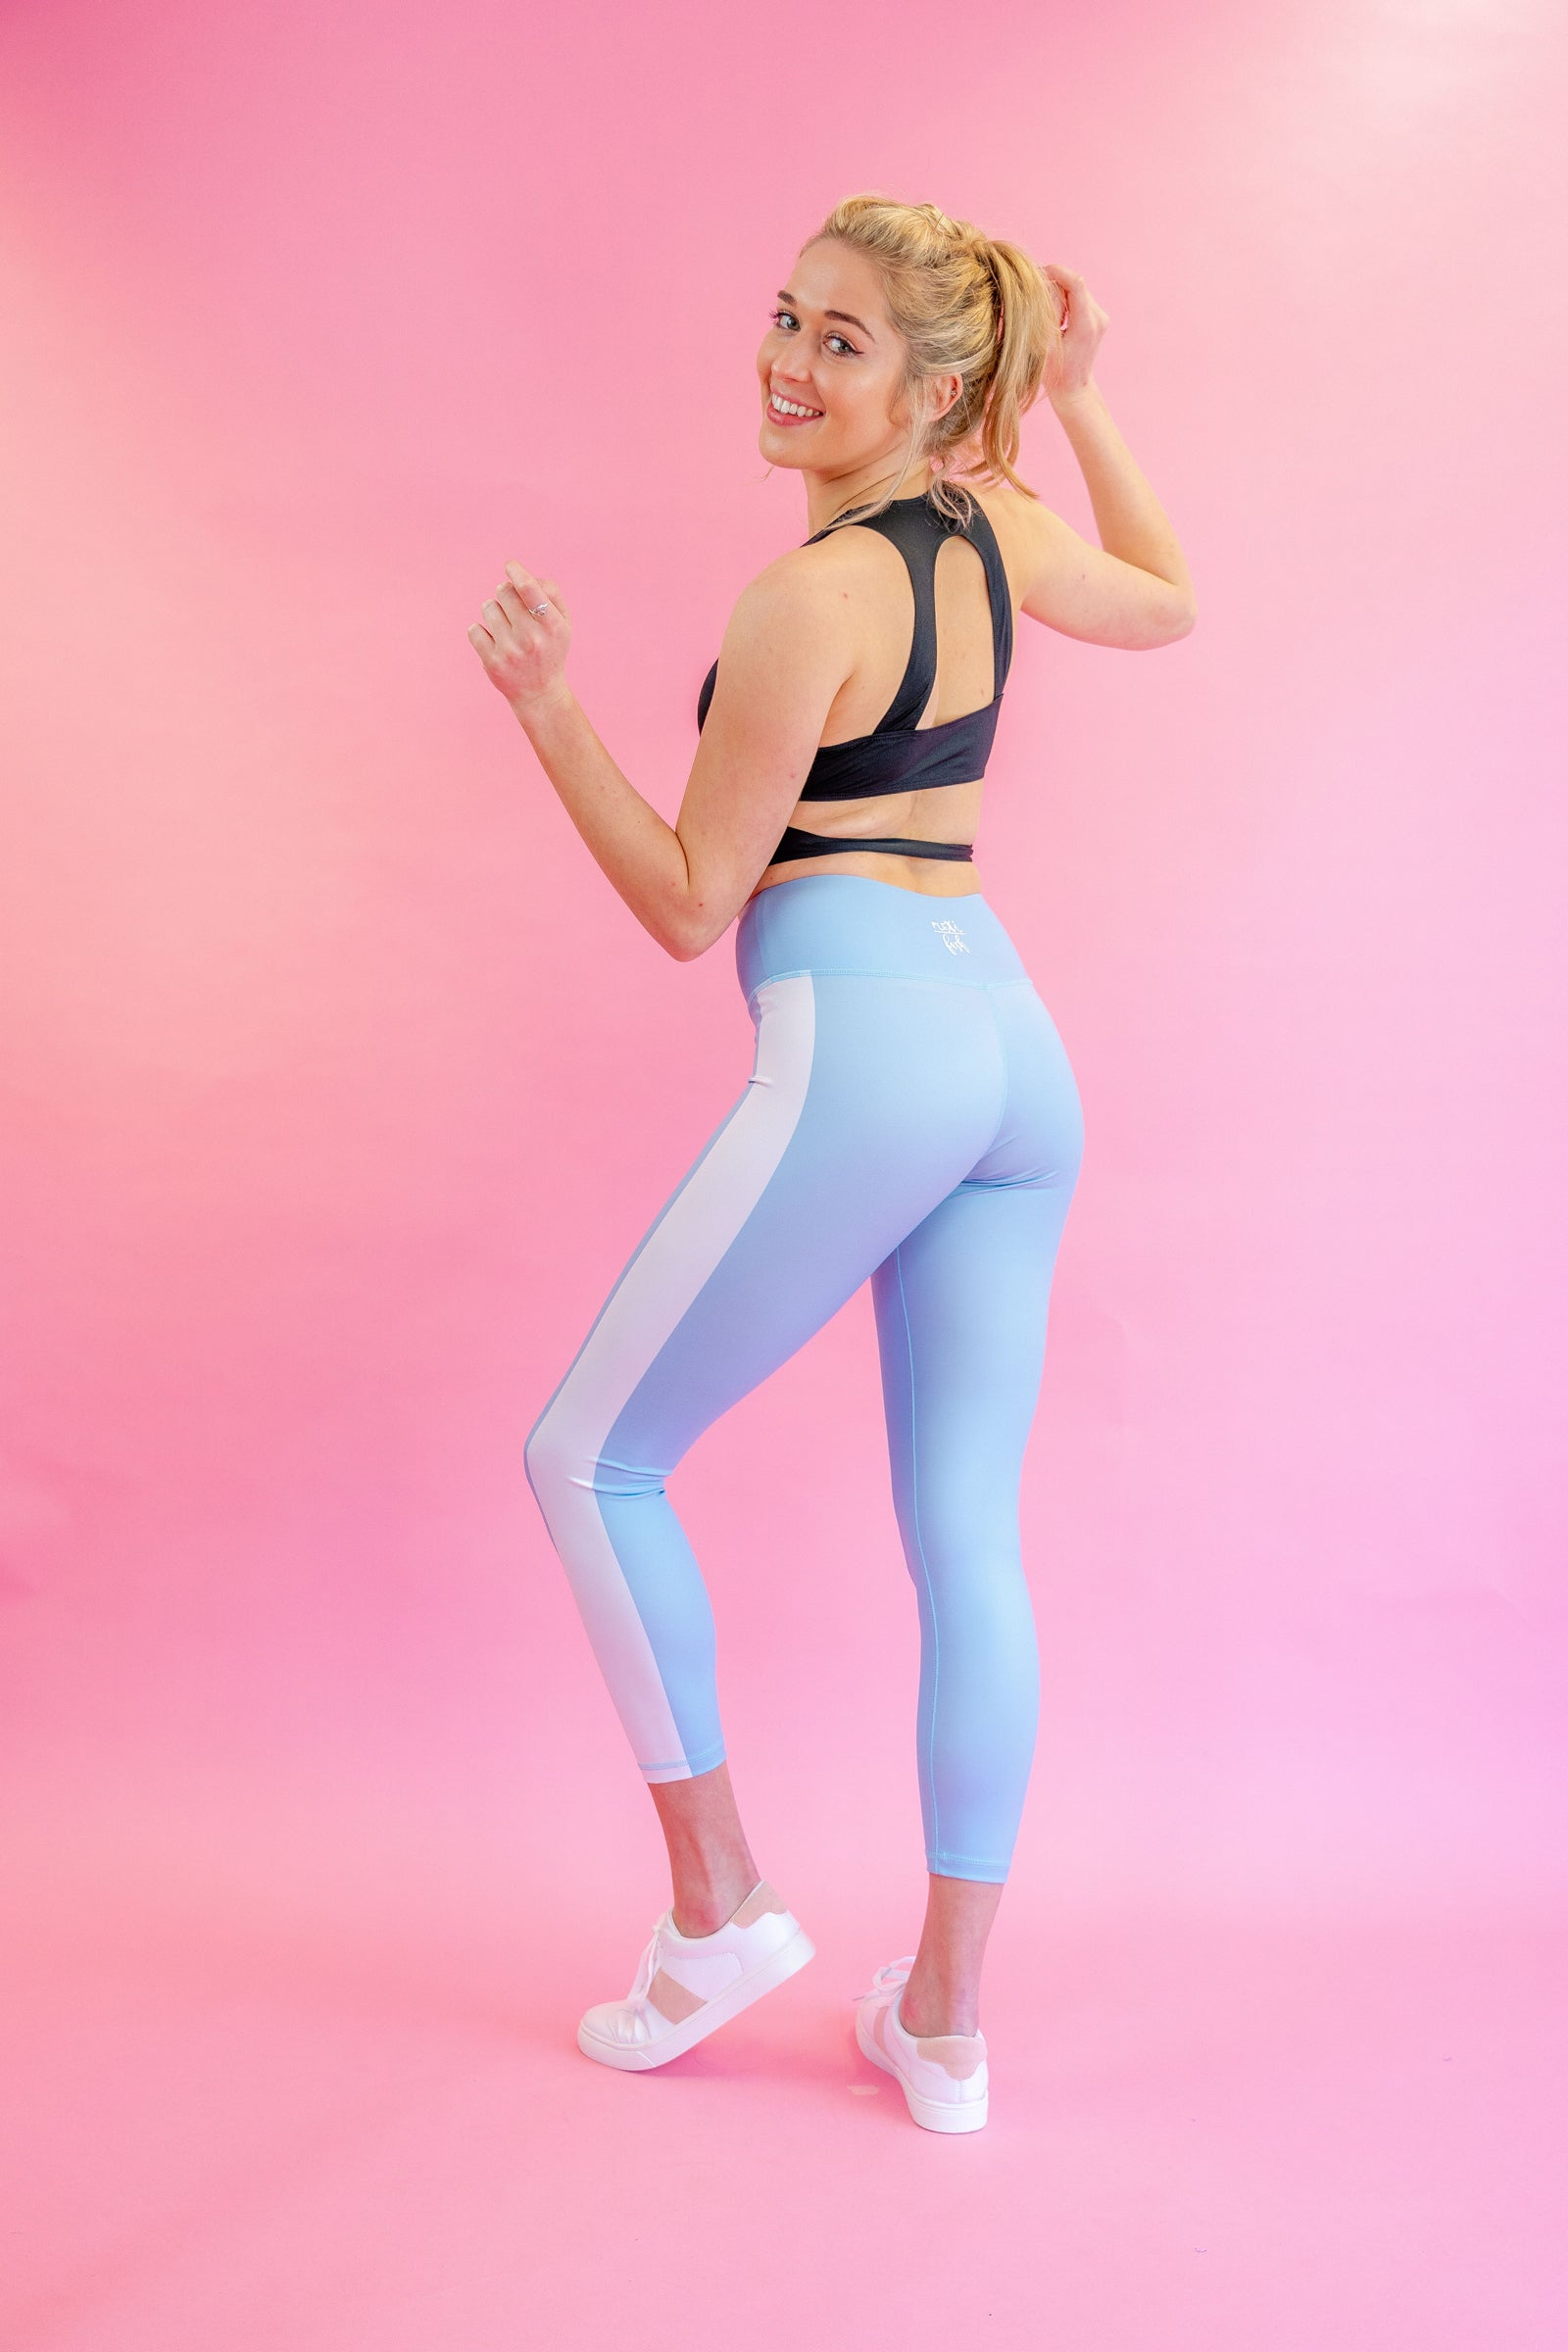 05bd0568cdb4b1 High-Waisted Into the Blue with White Side-Stripes Leggings for Yoga Pilates  Gym Fitness Workouts